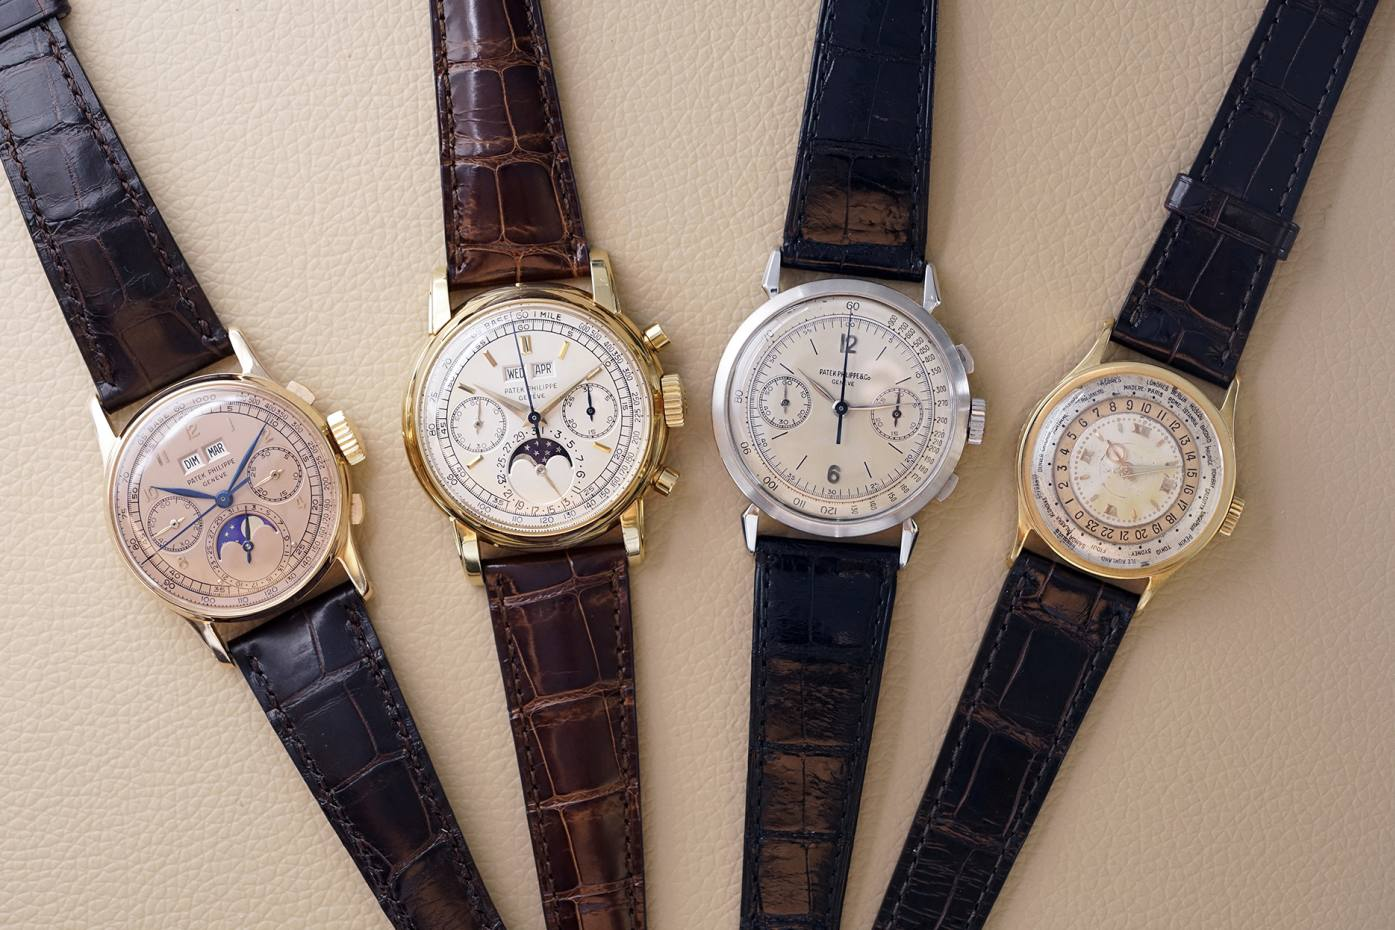 Some of Jean-Claude Biver's Patek Philippes, including references 1518, 2499, 1579 and 96HU, will be featured in the exhibition